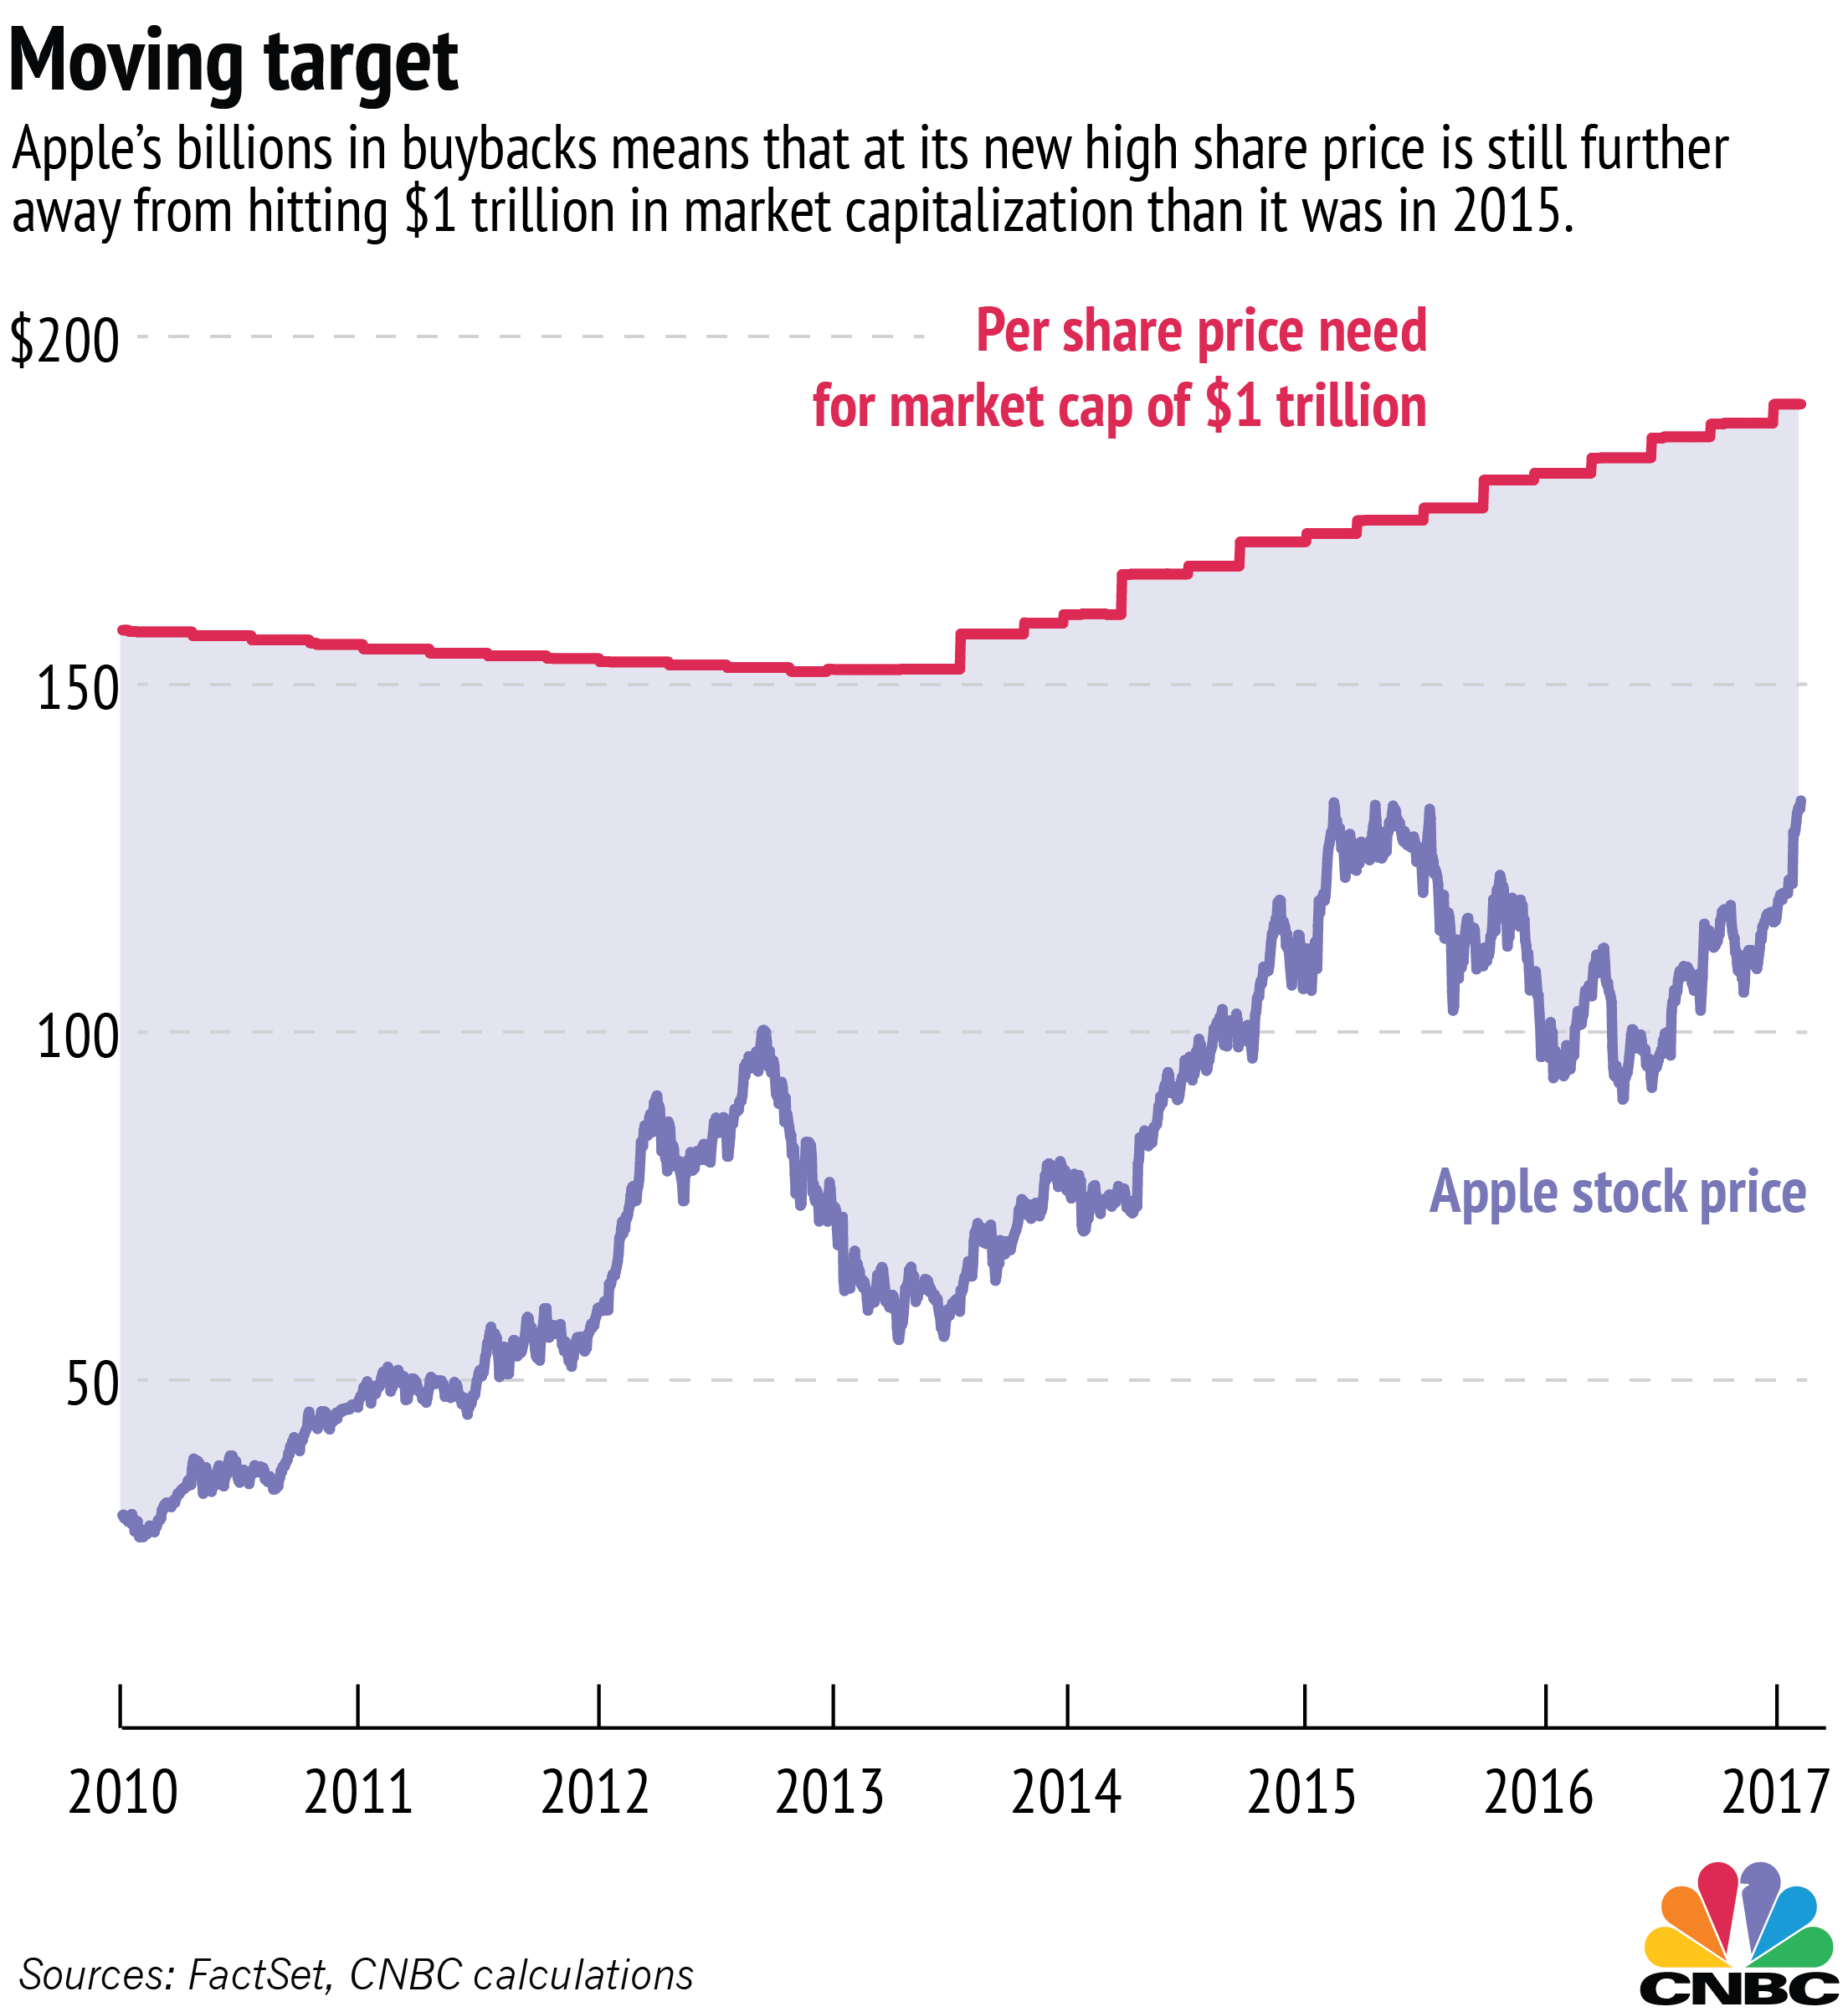 Apple (NASDAQ:AAPL) Closes at Record High for Second Straight Trading Day